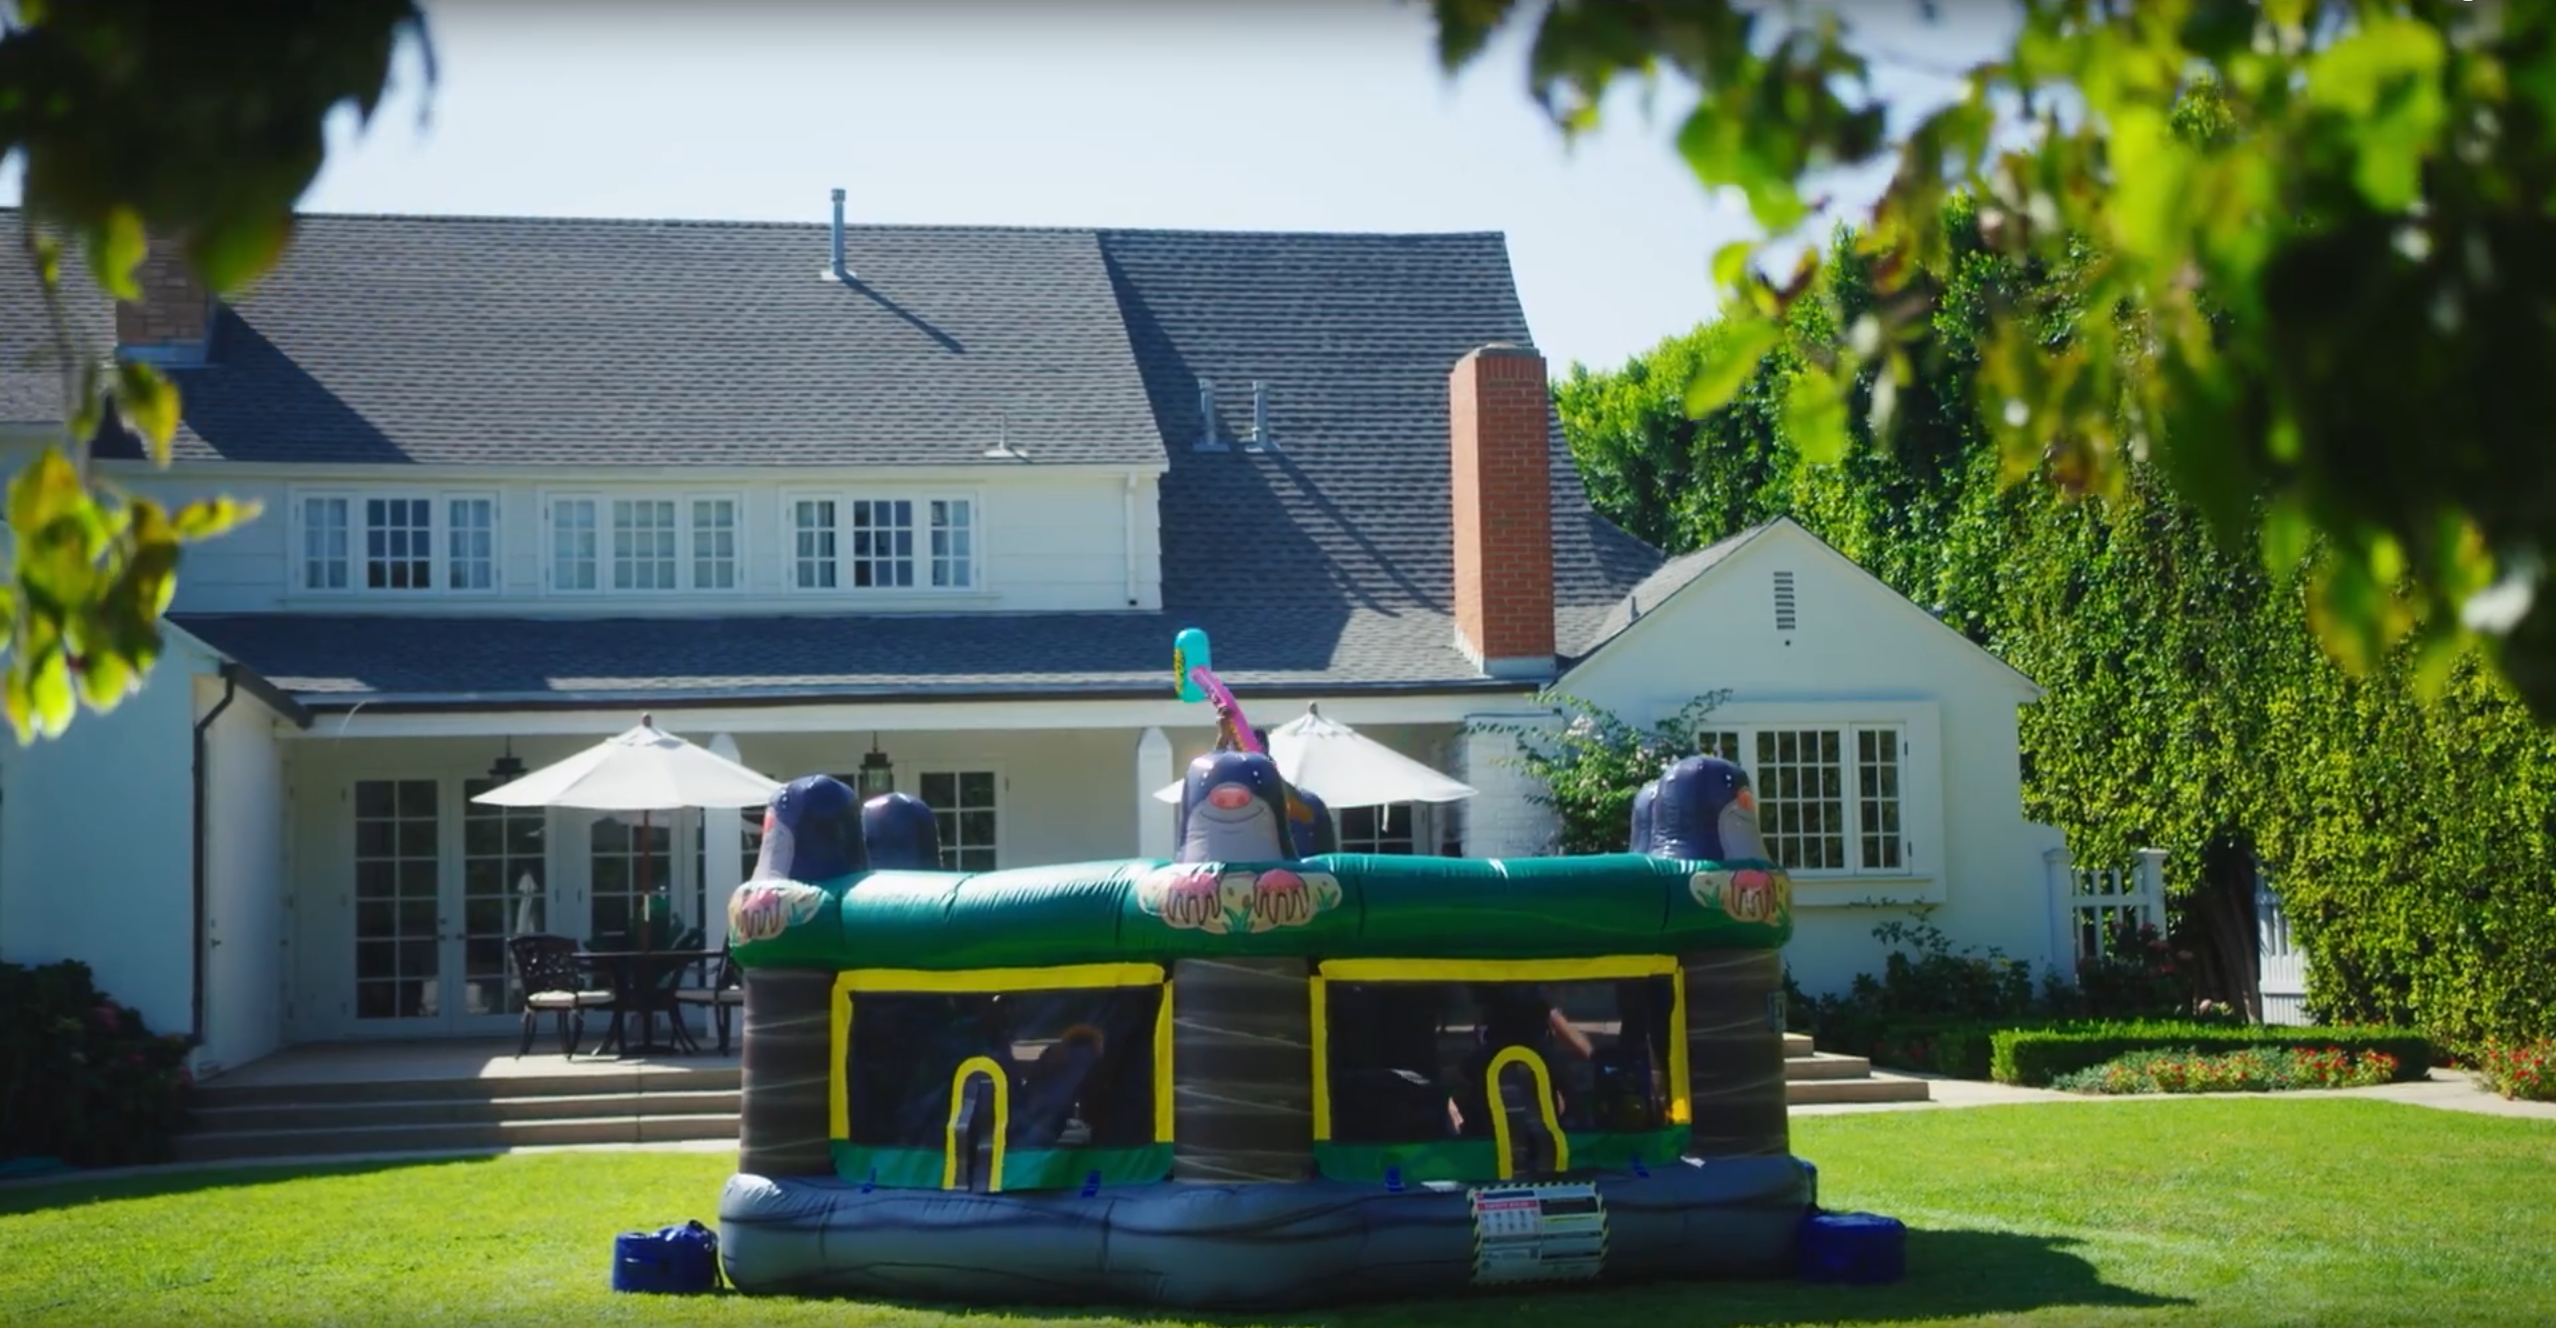 An Enormous Inflatable Human Whack-A-Mole Game Exists, And You Need it For Your Next Party